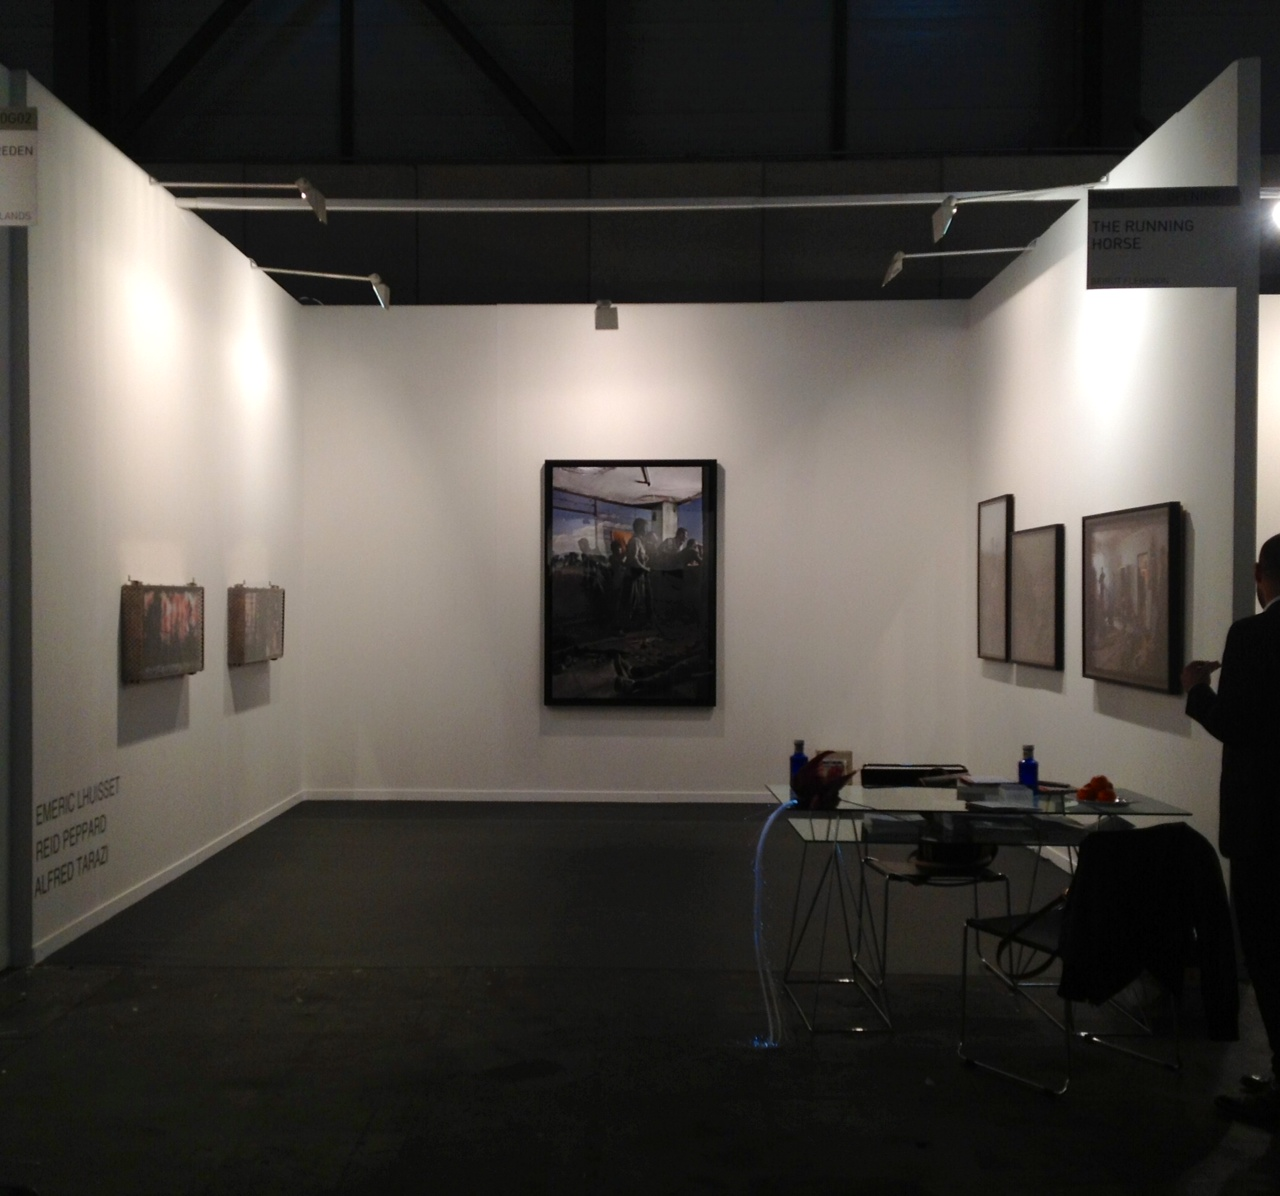 Booth 10G01 ARCOmadrid 2013